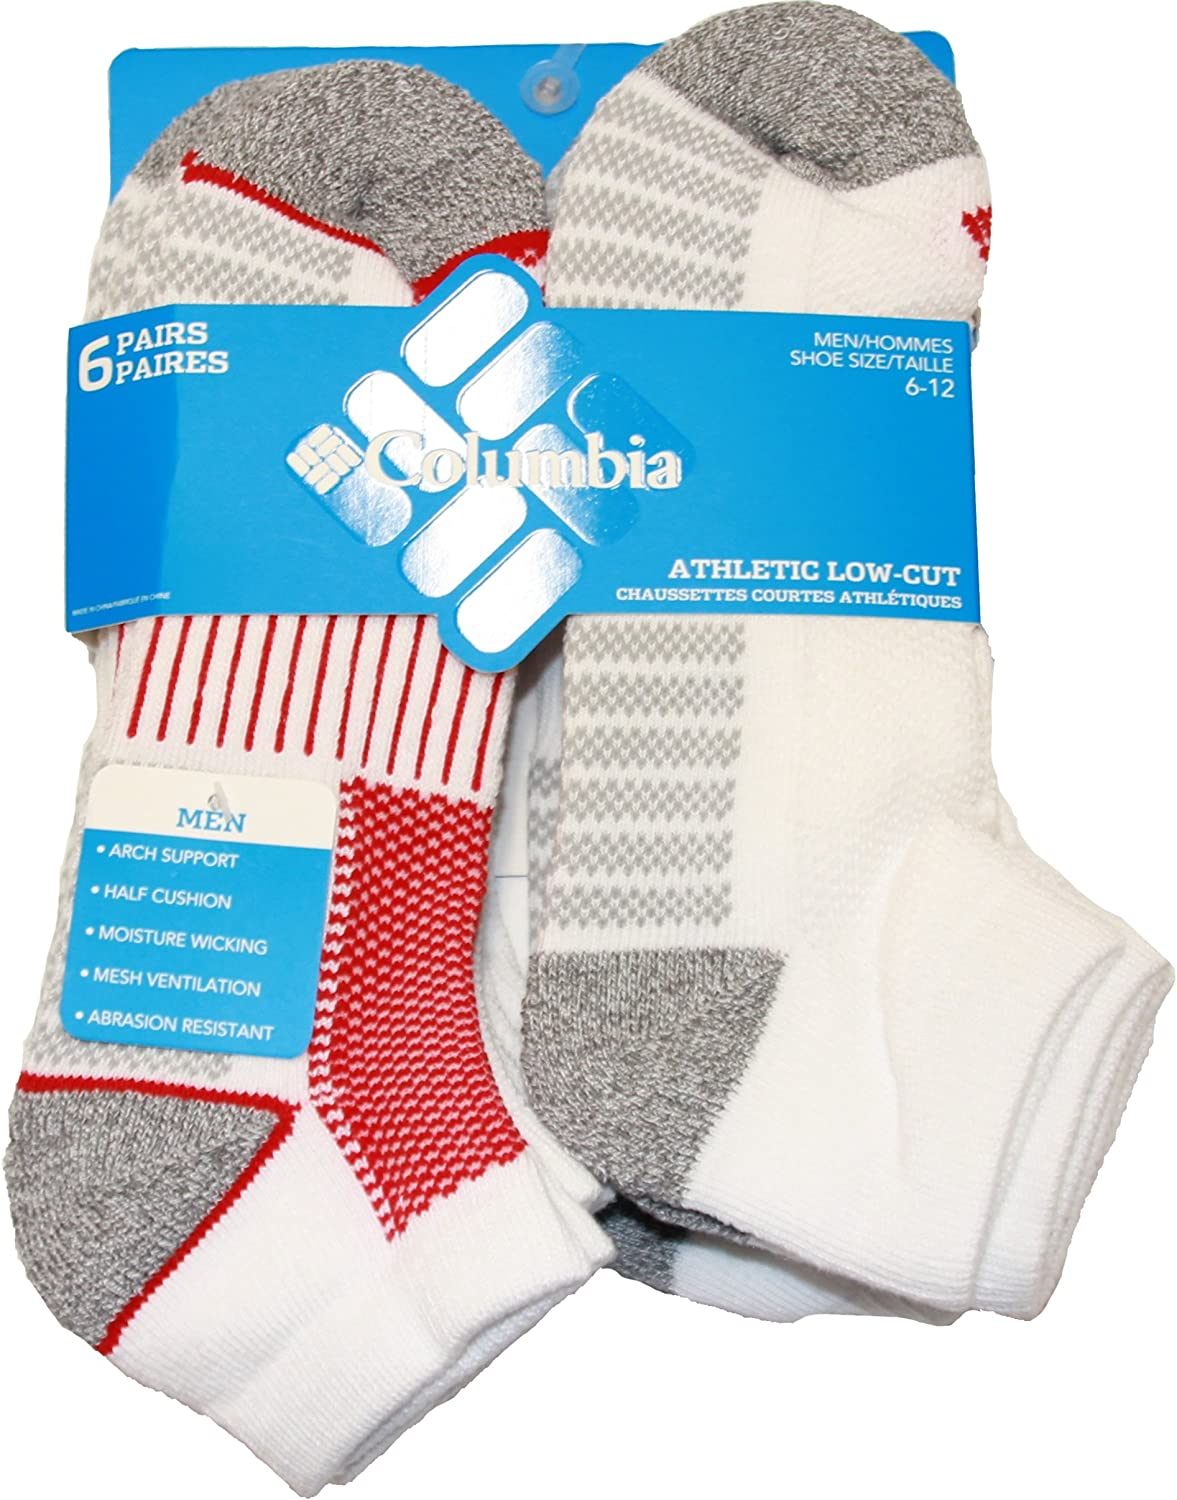 Columbia Men's 1/2 Cushion Quarter Arch Support Poly Blend Sock, 6 Pair